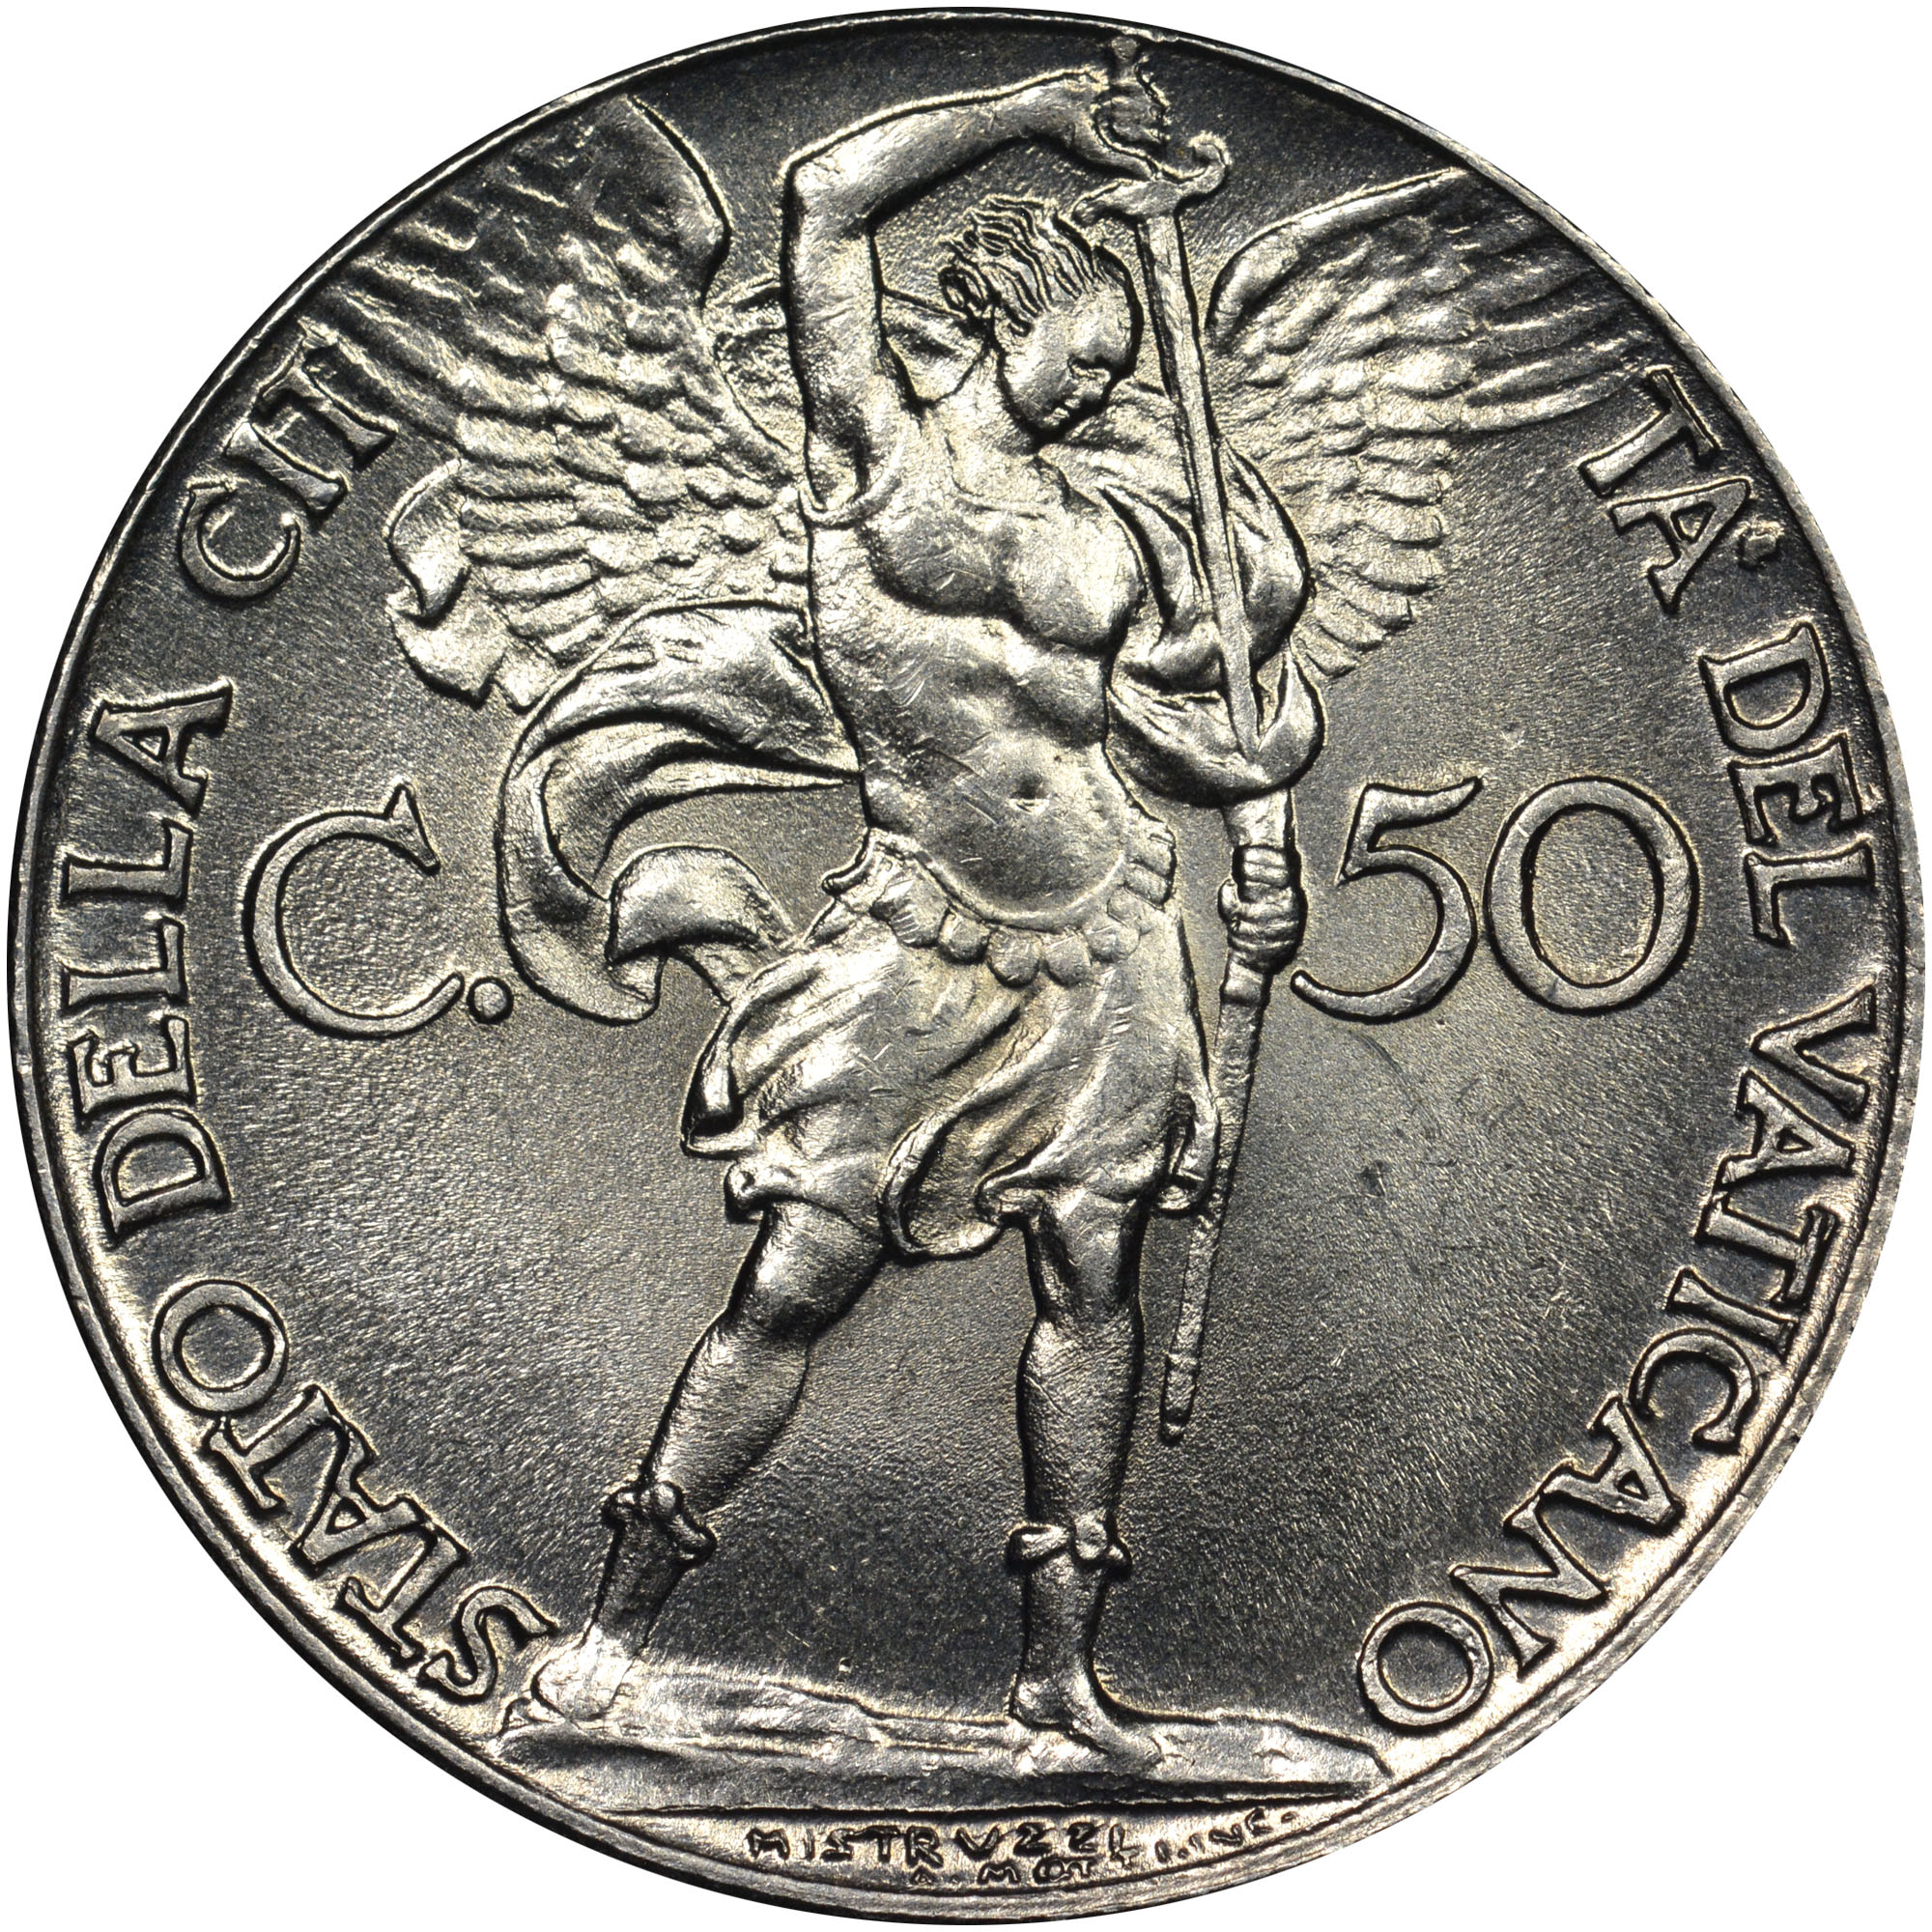 Vatican City 50 Centesimi reverse